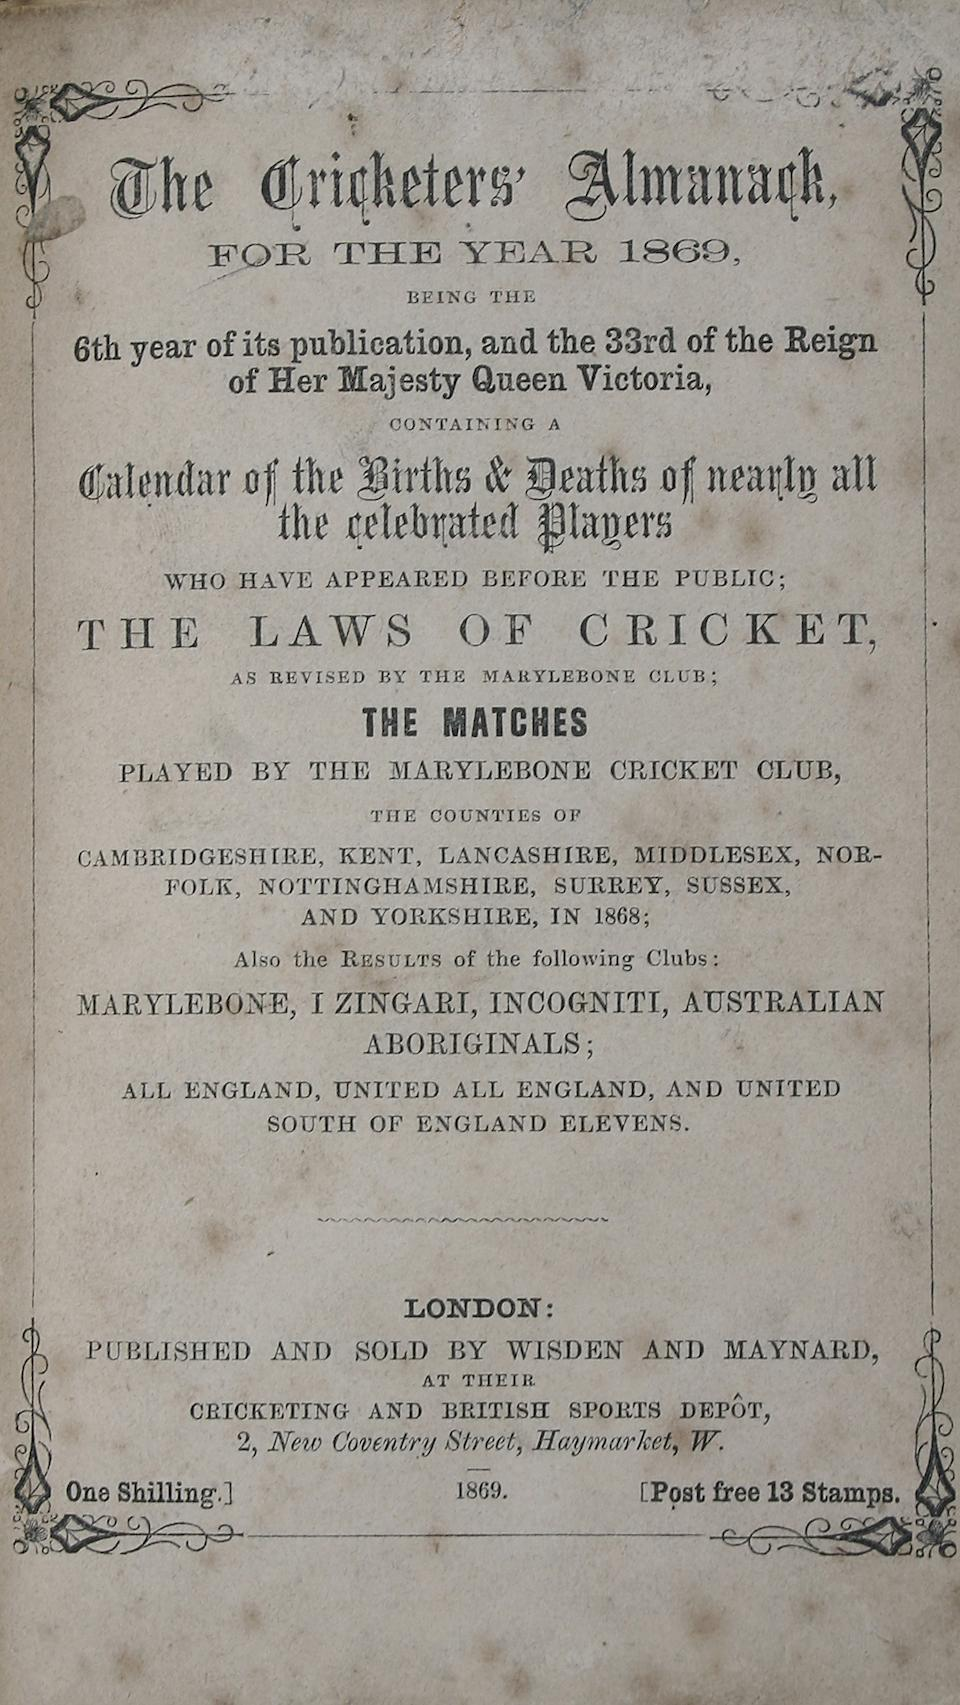 Complete set of John Wisden's Cricketers' Almanacks